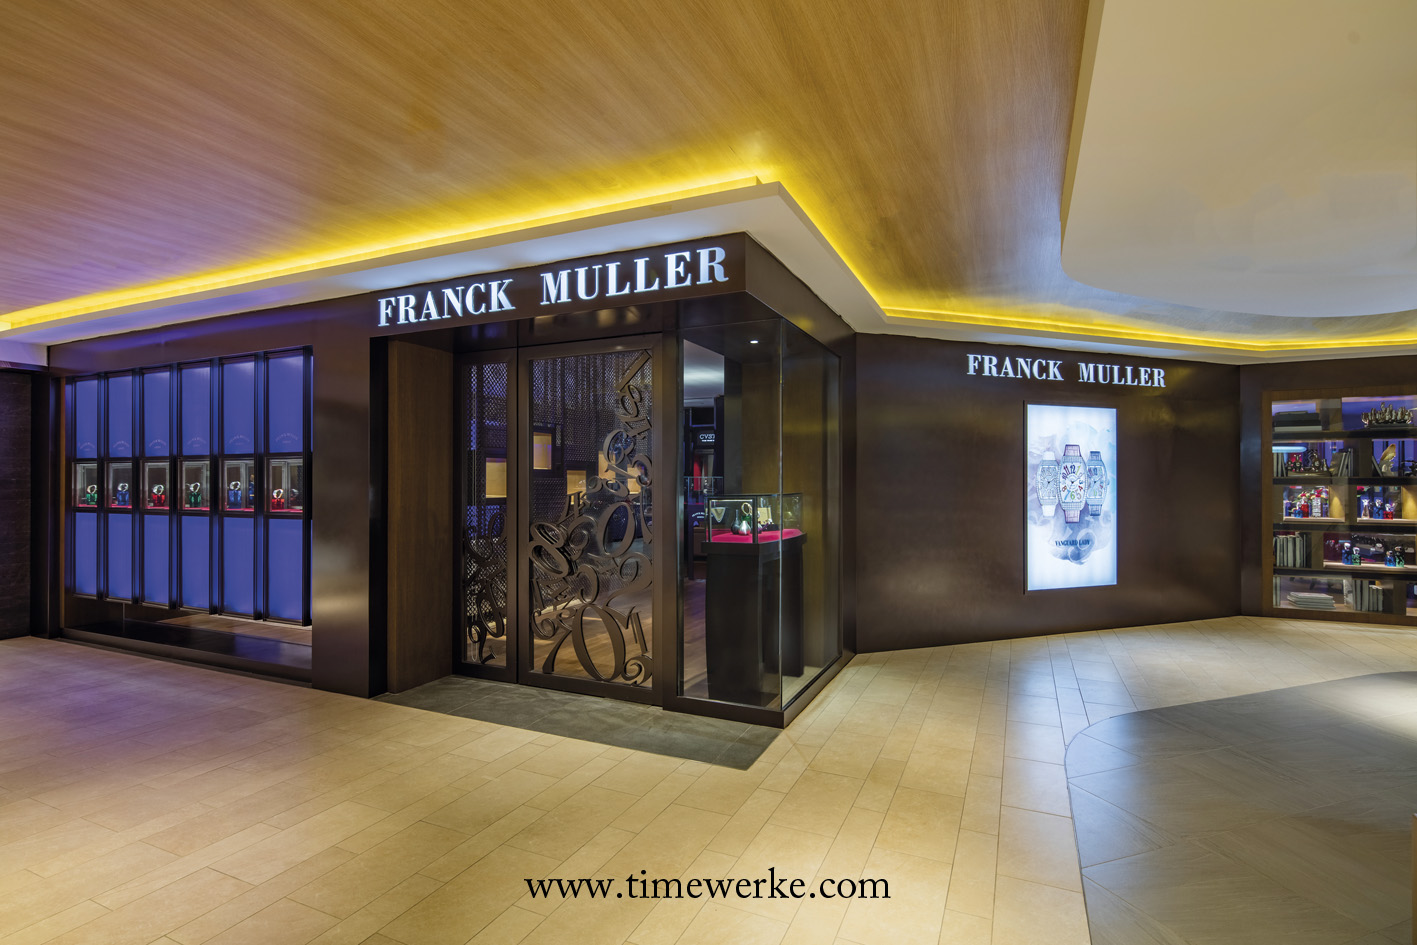 There are two entrances to the Franck Muller Boutique at Isetan, Wisma Atria. One is located within the shopping mall (above) and the other is at street level which can be accessed from outside the building. Photo: © Franck Muller.